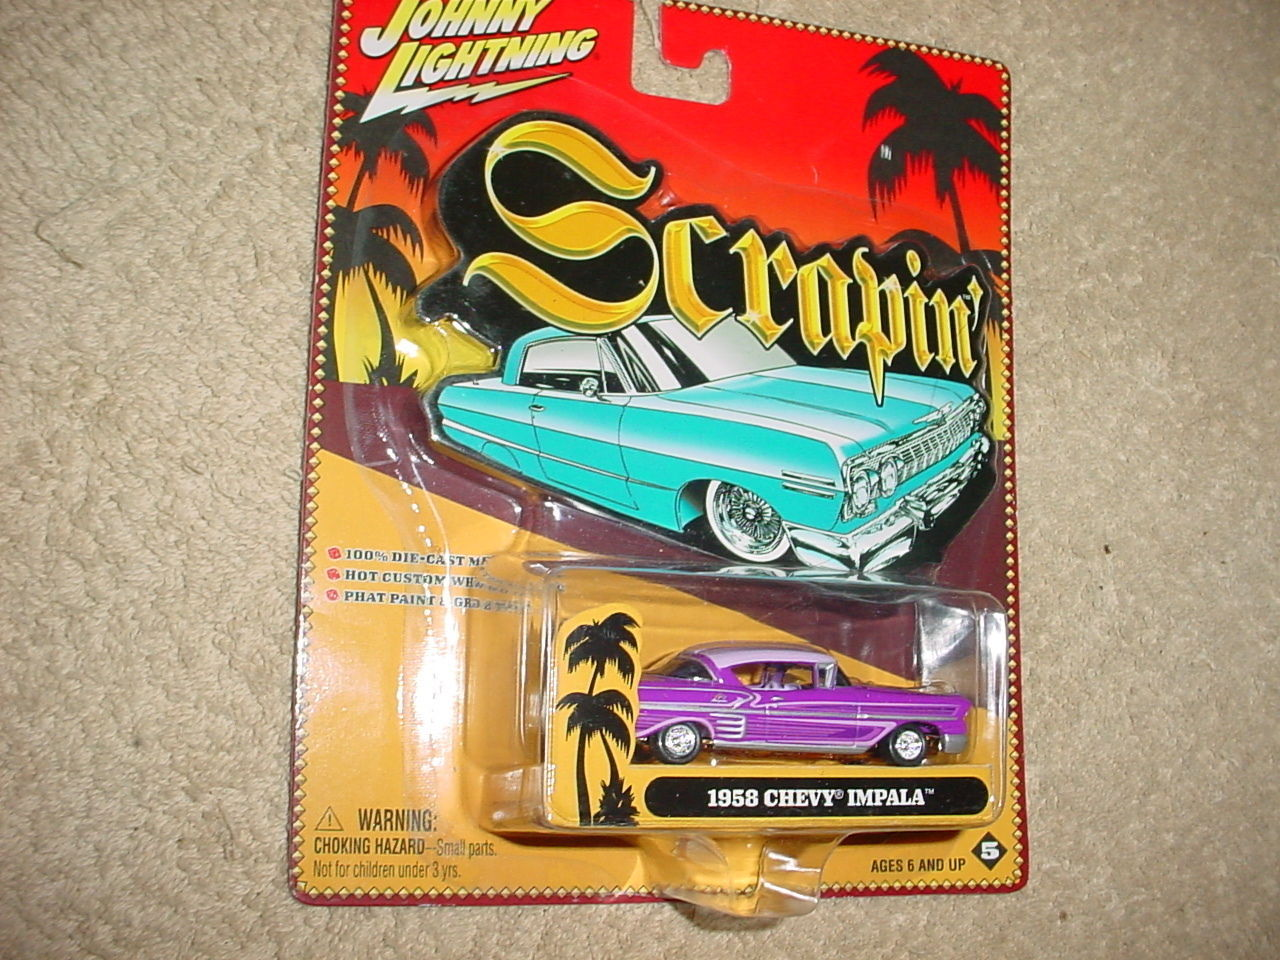 Johnny Lightning Scr API N' Series 1958 and similar items